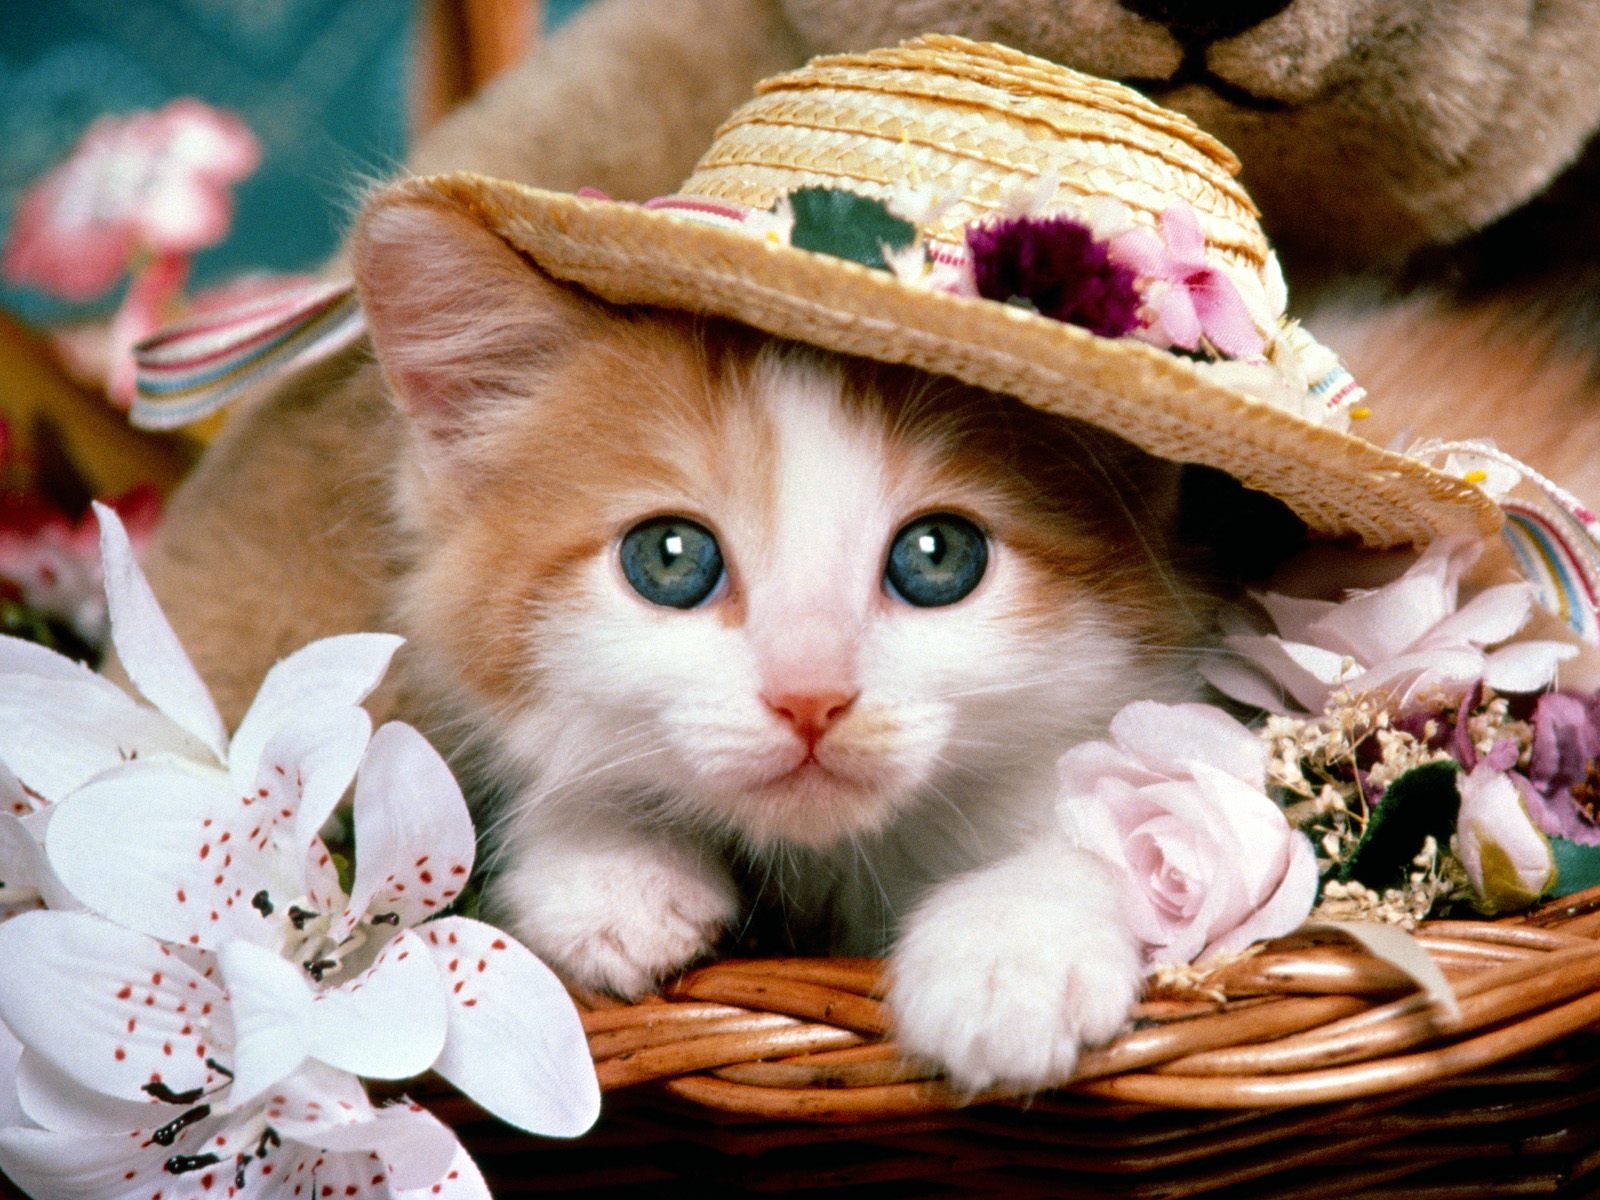 Wallpapers Dhamaka Cute Baby Cat With A Hat Wallpapers And Nice Pics Of Baby Cats And Cats Wallpapers